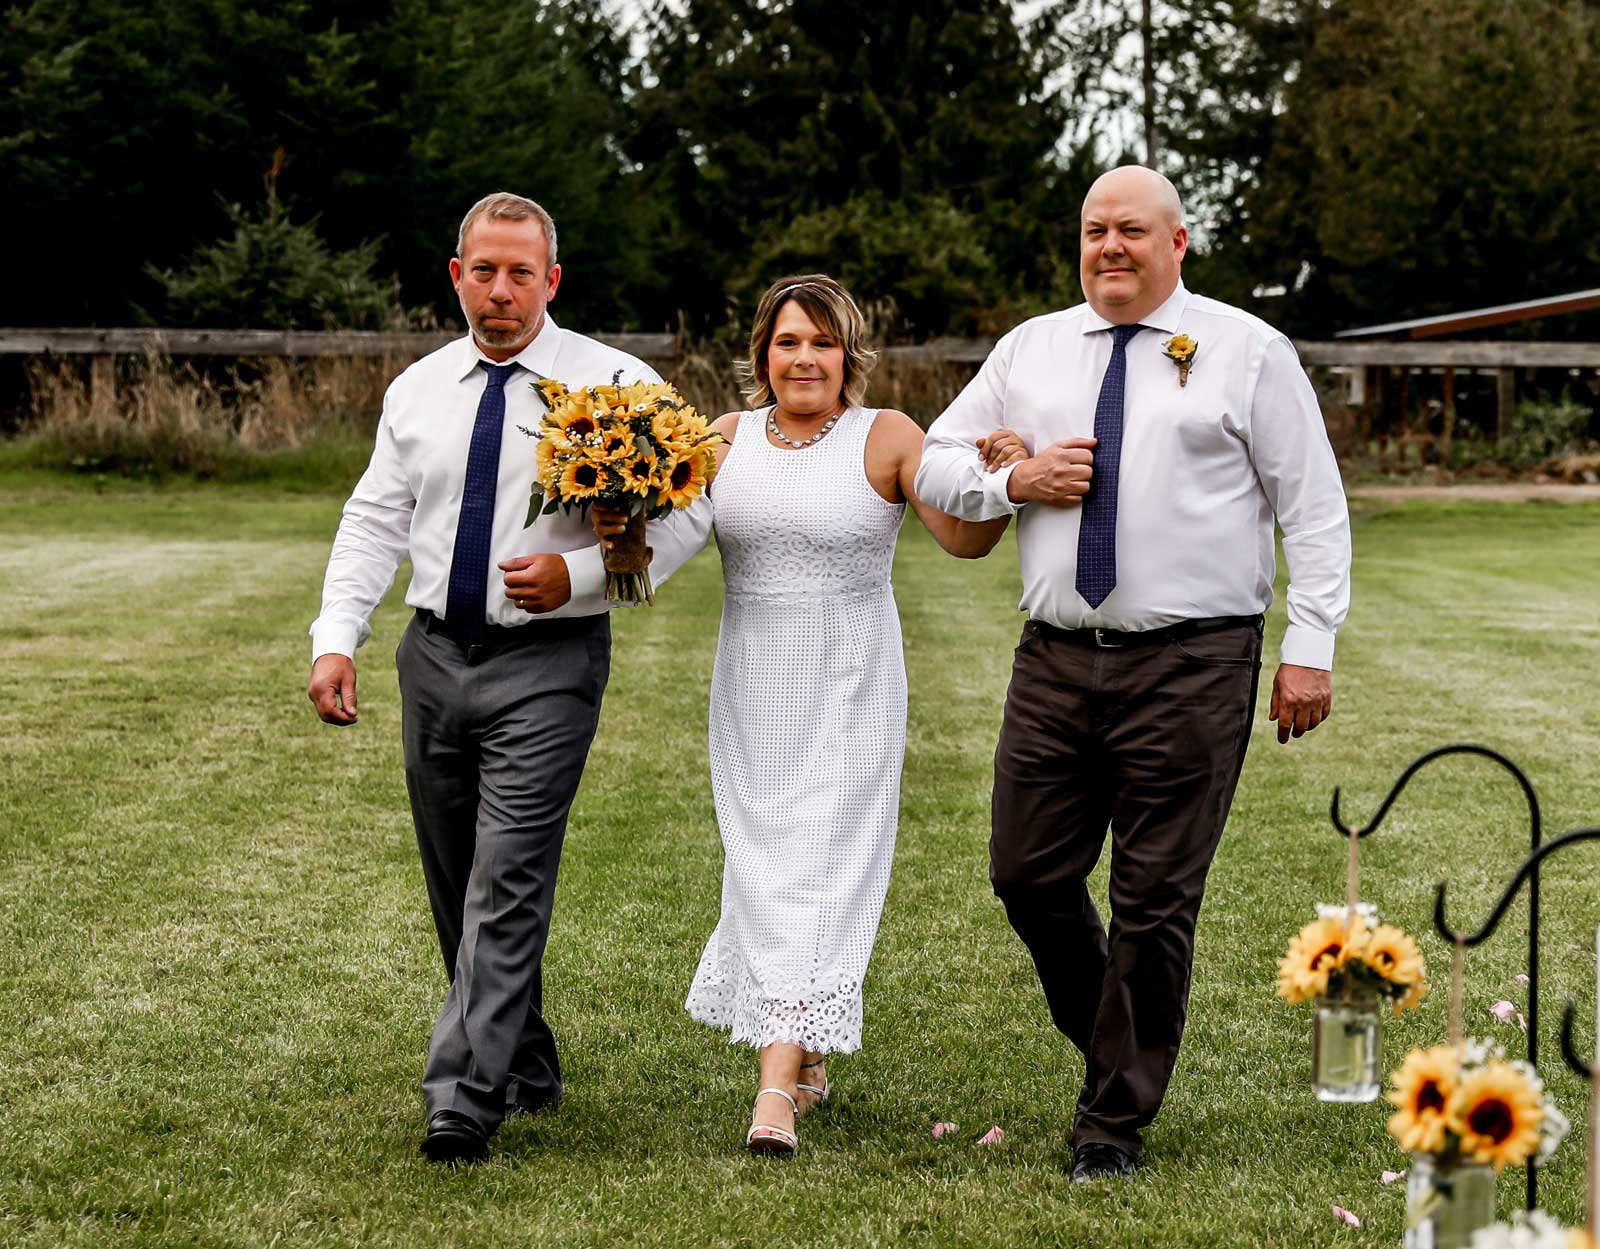 Bride and her brothers with sunflower bouquet